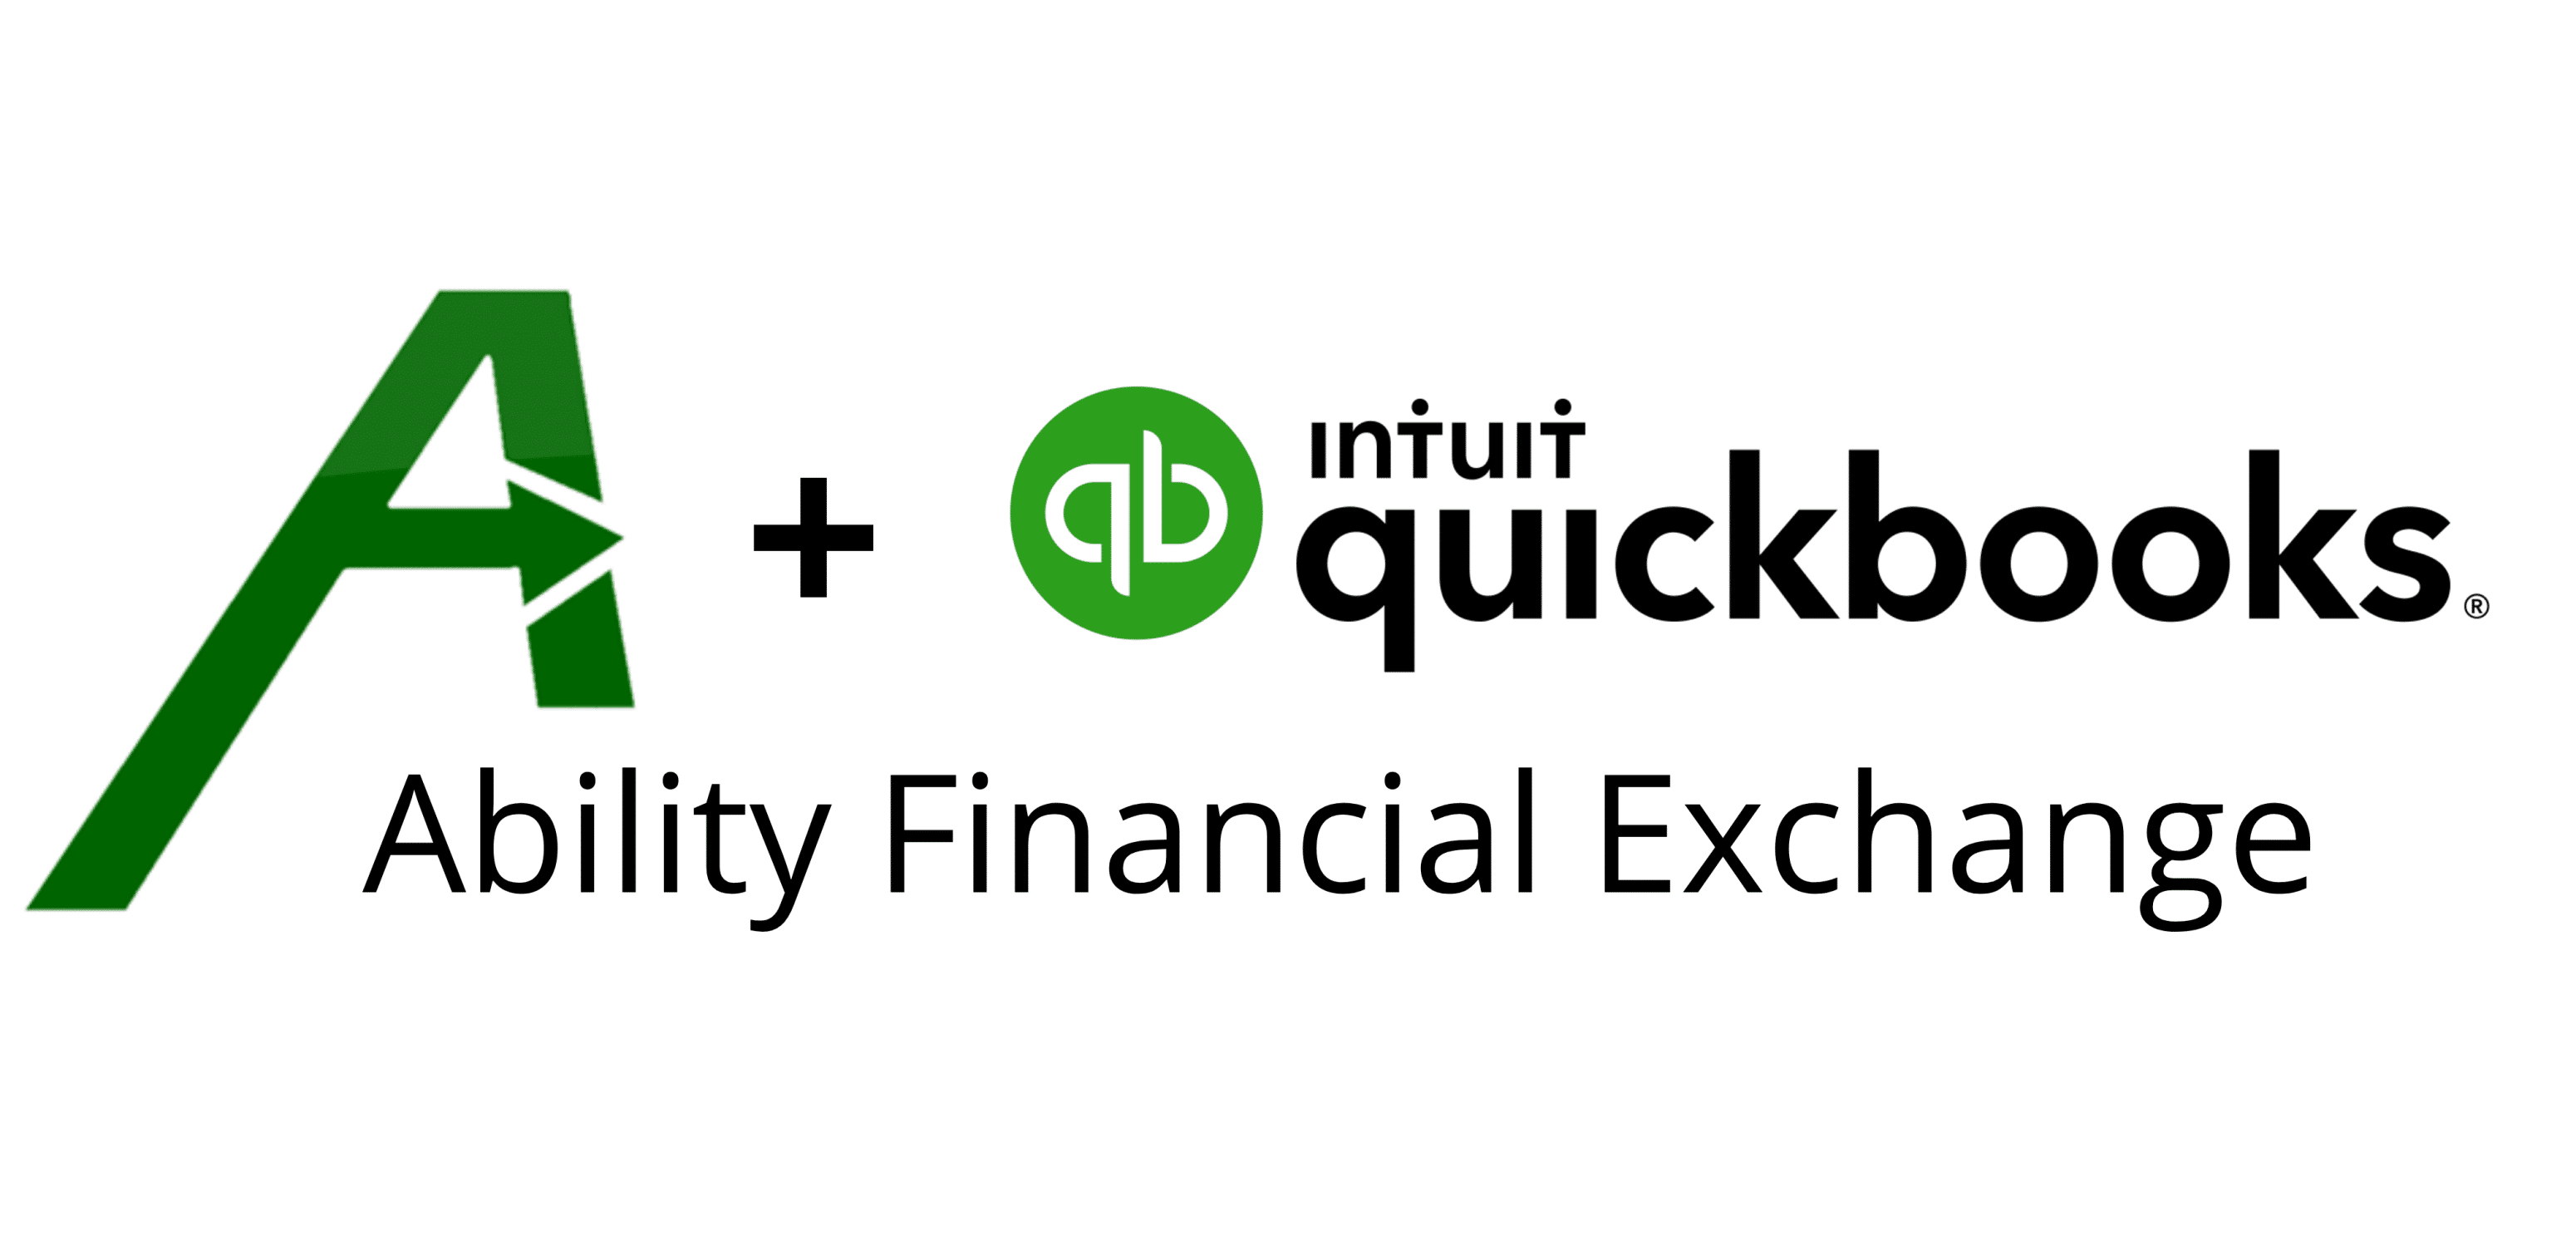 Importance of a scalable sync solution for QuickBooks Point of Sale: Ability Financial Exchange for QuickBooks Online